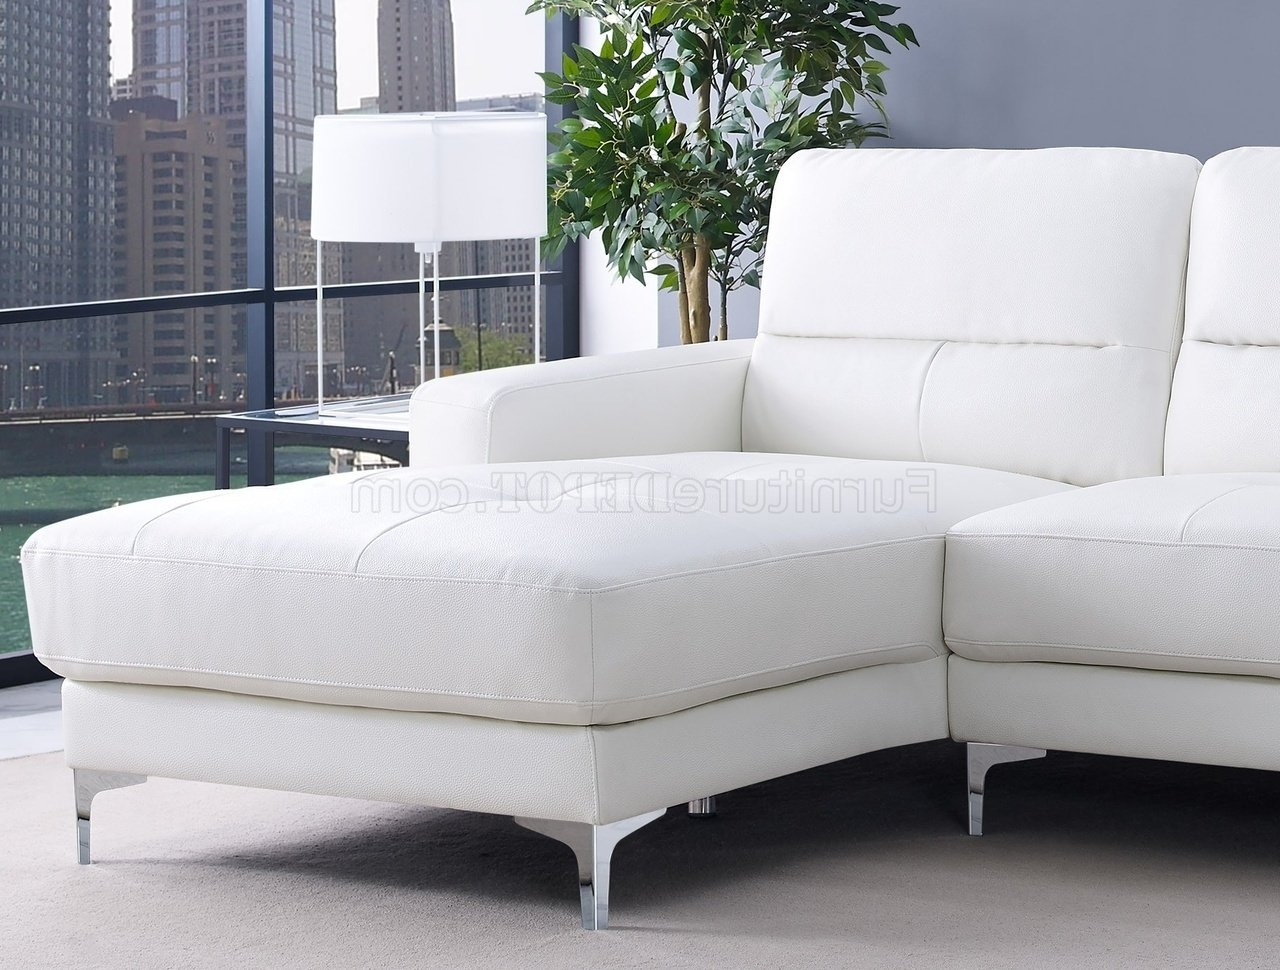 Widely Used Memphis Sectional Sofas Within Sectional Sofa In White Bonded Leatherwhiteline (View 10 of 15)